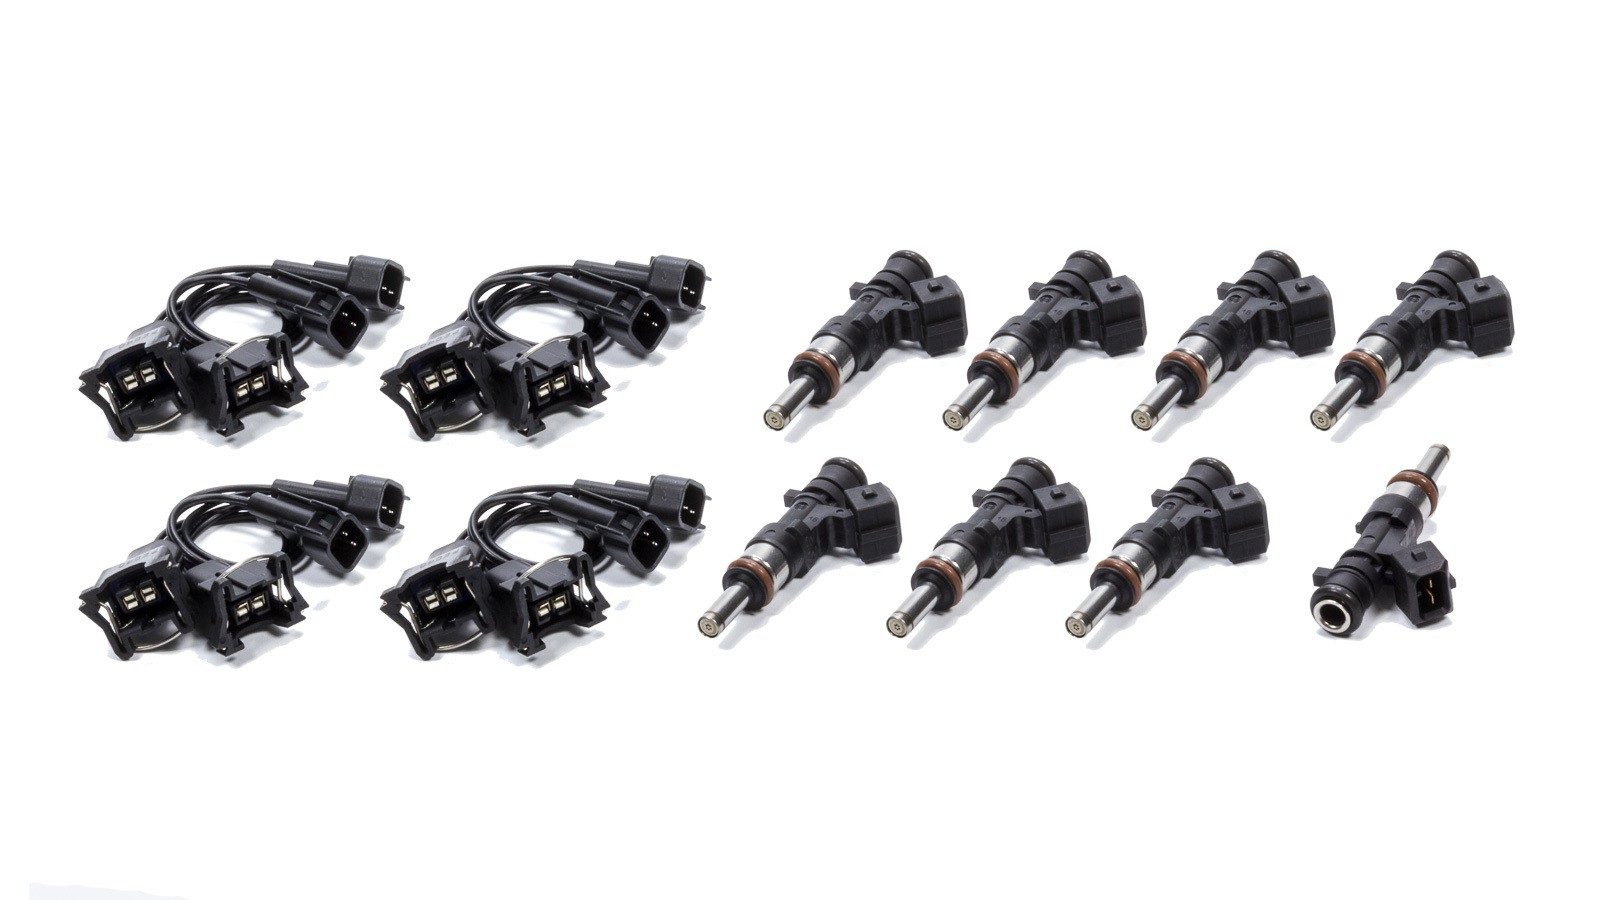 Deatschwerks 17MX-03-1100-8 Fuel Injector, 105 lb/hr, Hellcat, Mopar Gen III Hemi, Dodge LA-Body / LC-Body 2015-17, Set of 8